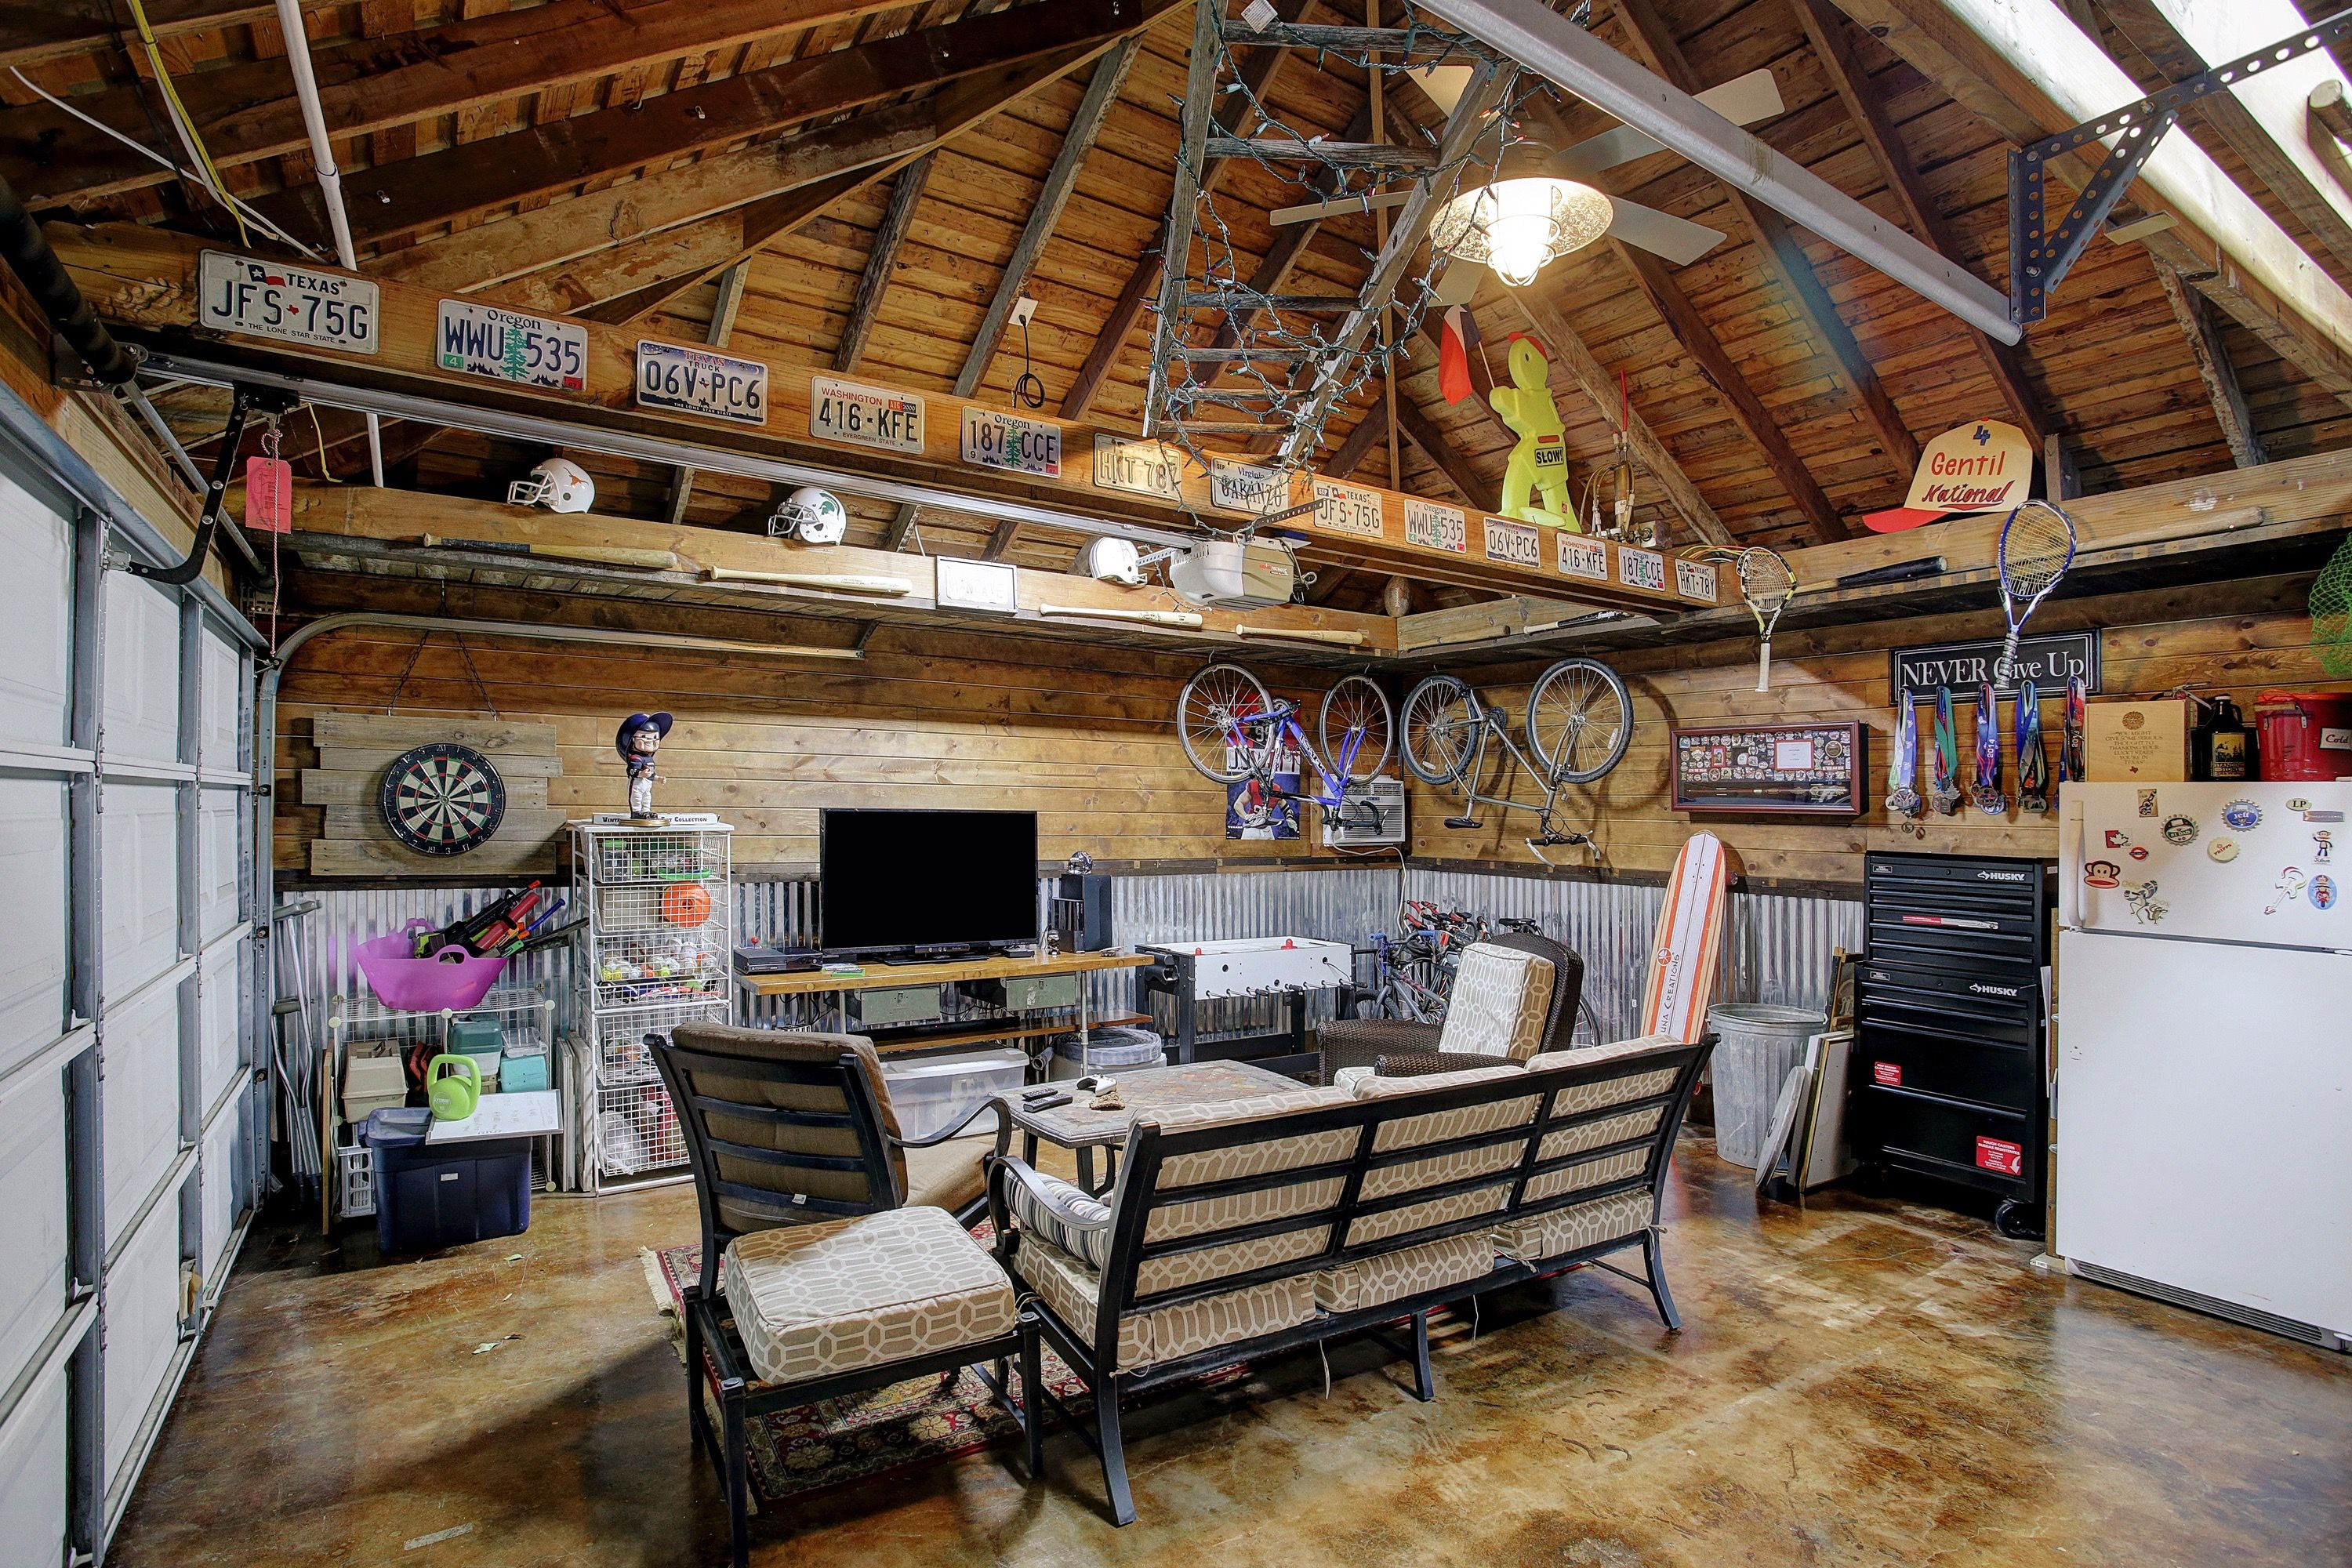 Outdoor garage remodel - man cave | Outdoor Living in 2019 ... on Man Cave Patio Ideas id=49999